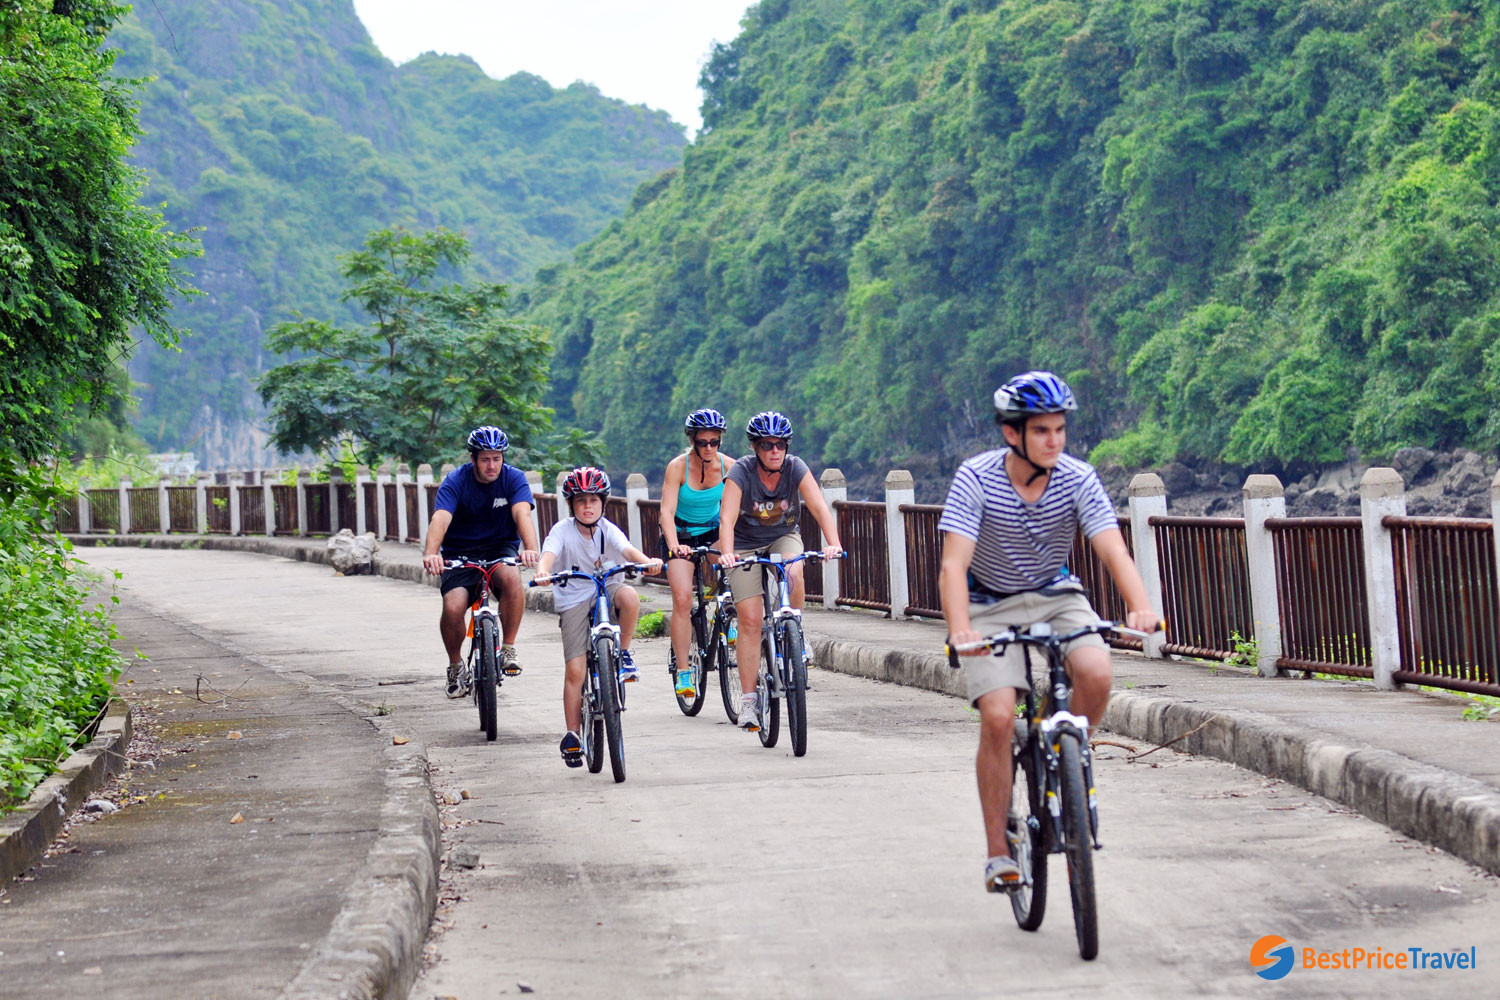 Biking route in Viet Hai Village in a 3-day itinerary in halong bay